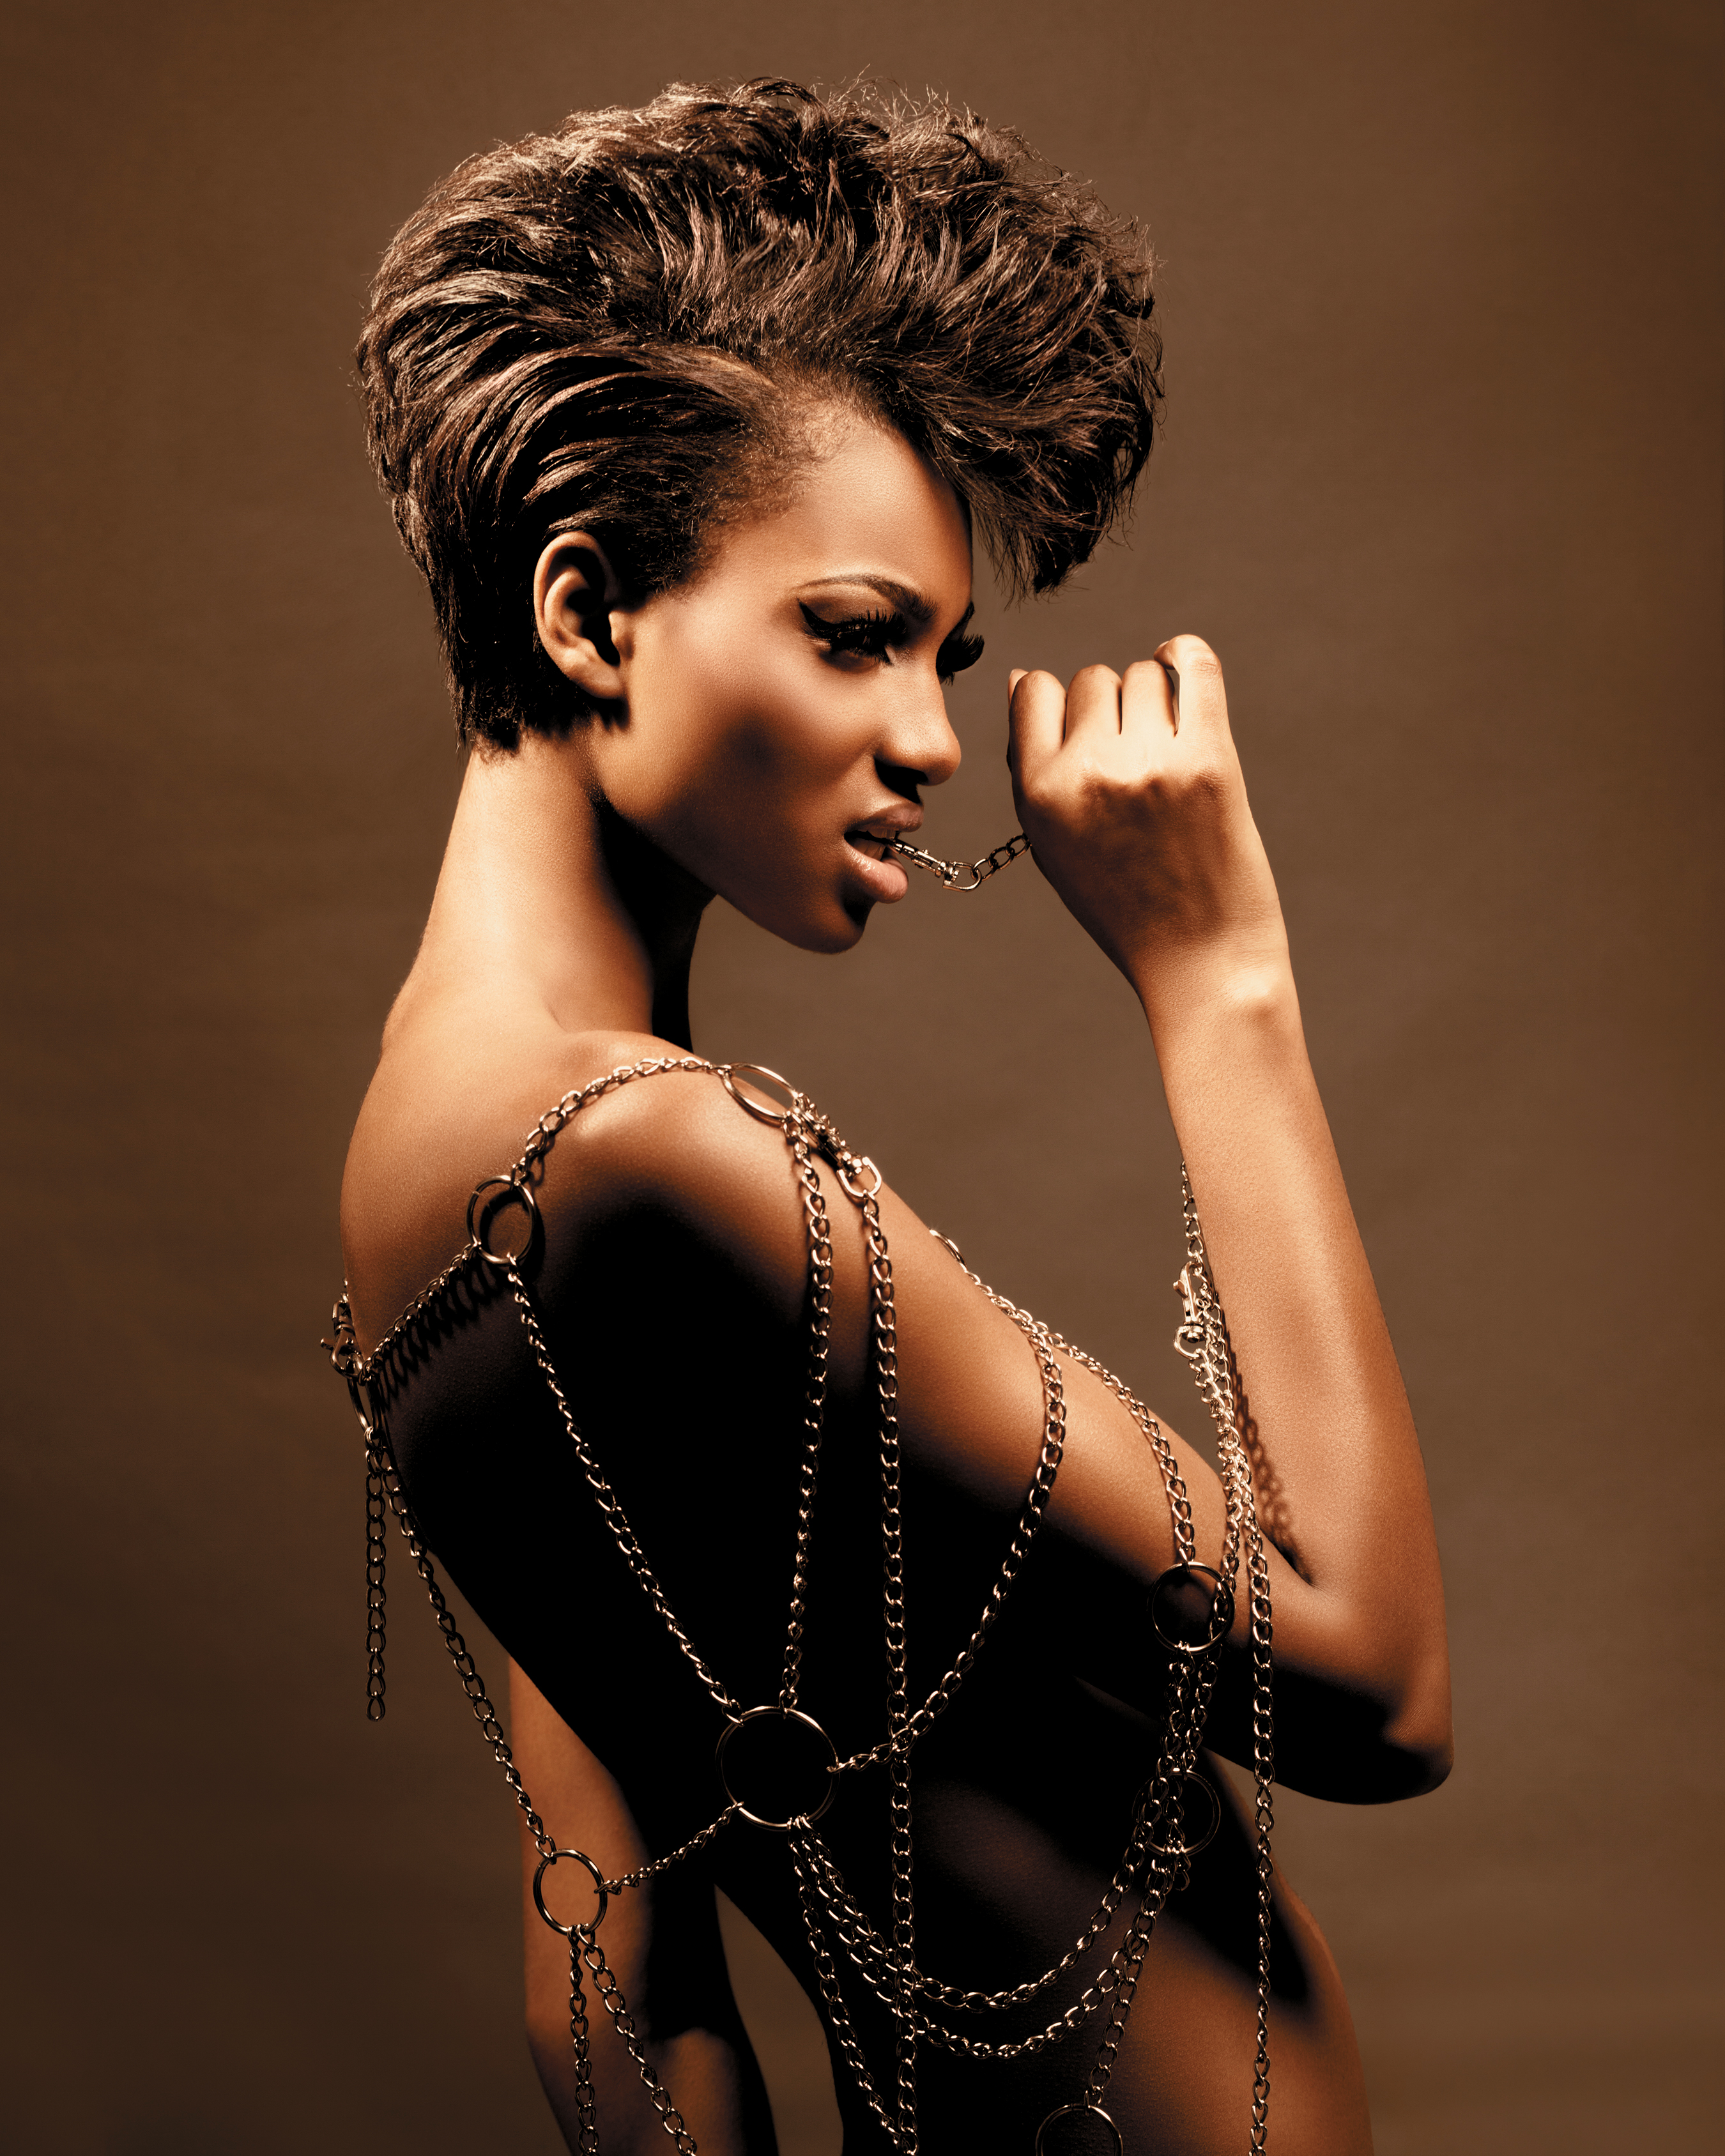 Relaxed hair was styled into a Mohawk. Next, layers were created in the crown area and through the back and sides using a scissor-over-comb technique.